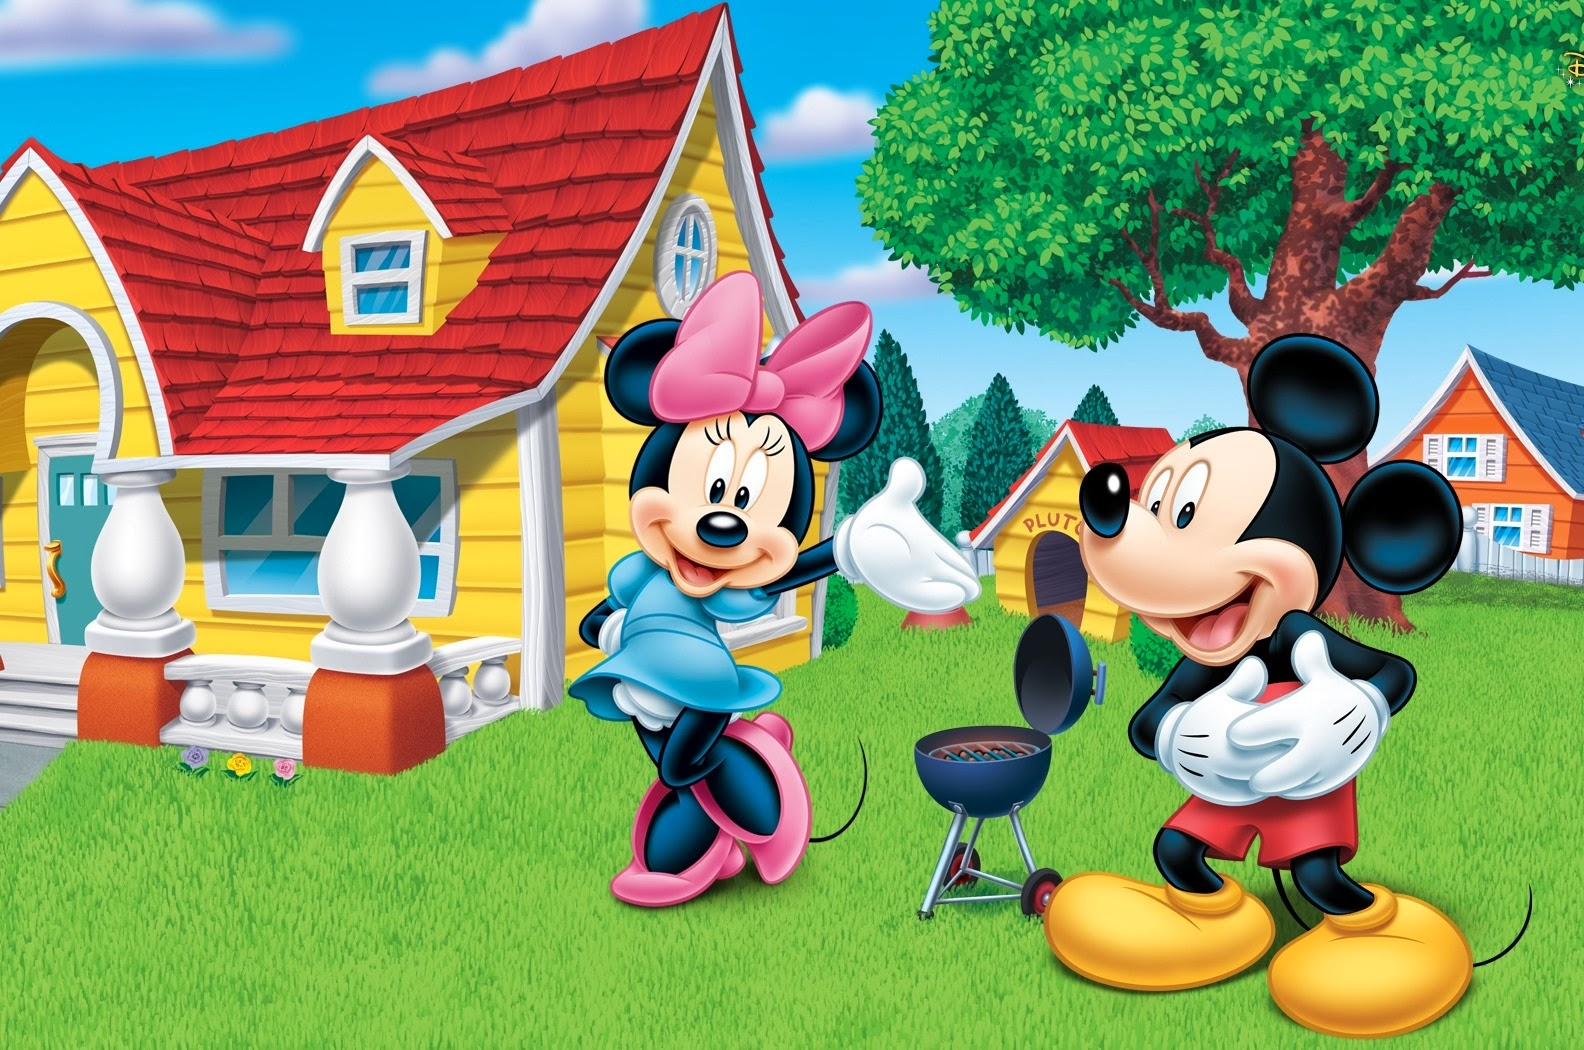 Cartoon Images Fall Wallpaper Disney Cartoon Mickey Mouse Amp Minnie Mouse 4u Hd Wallpaper